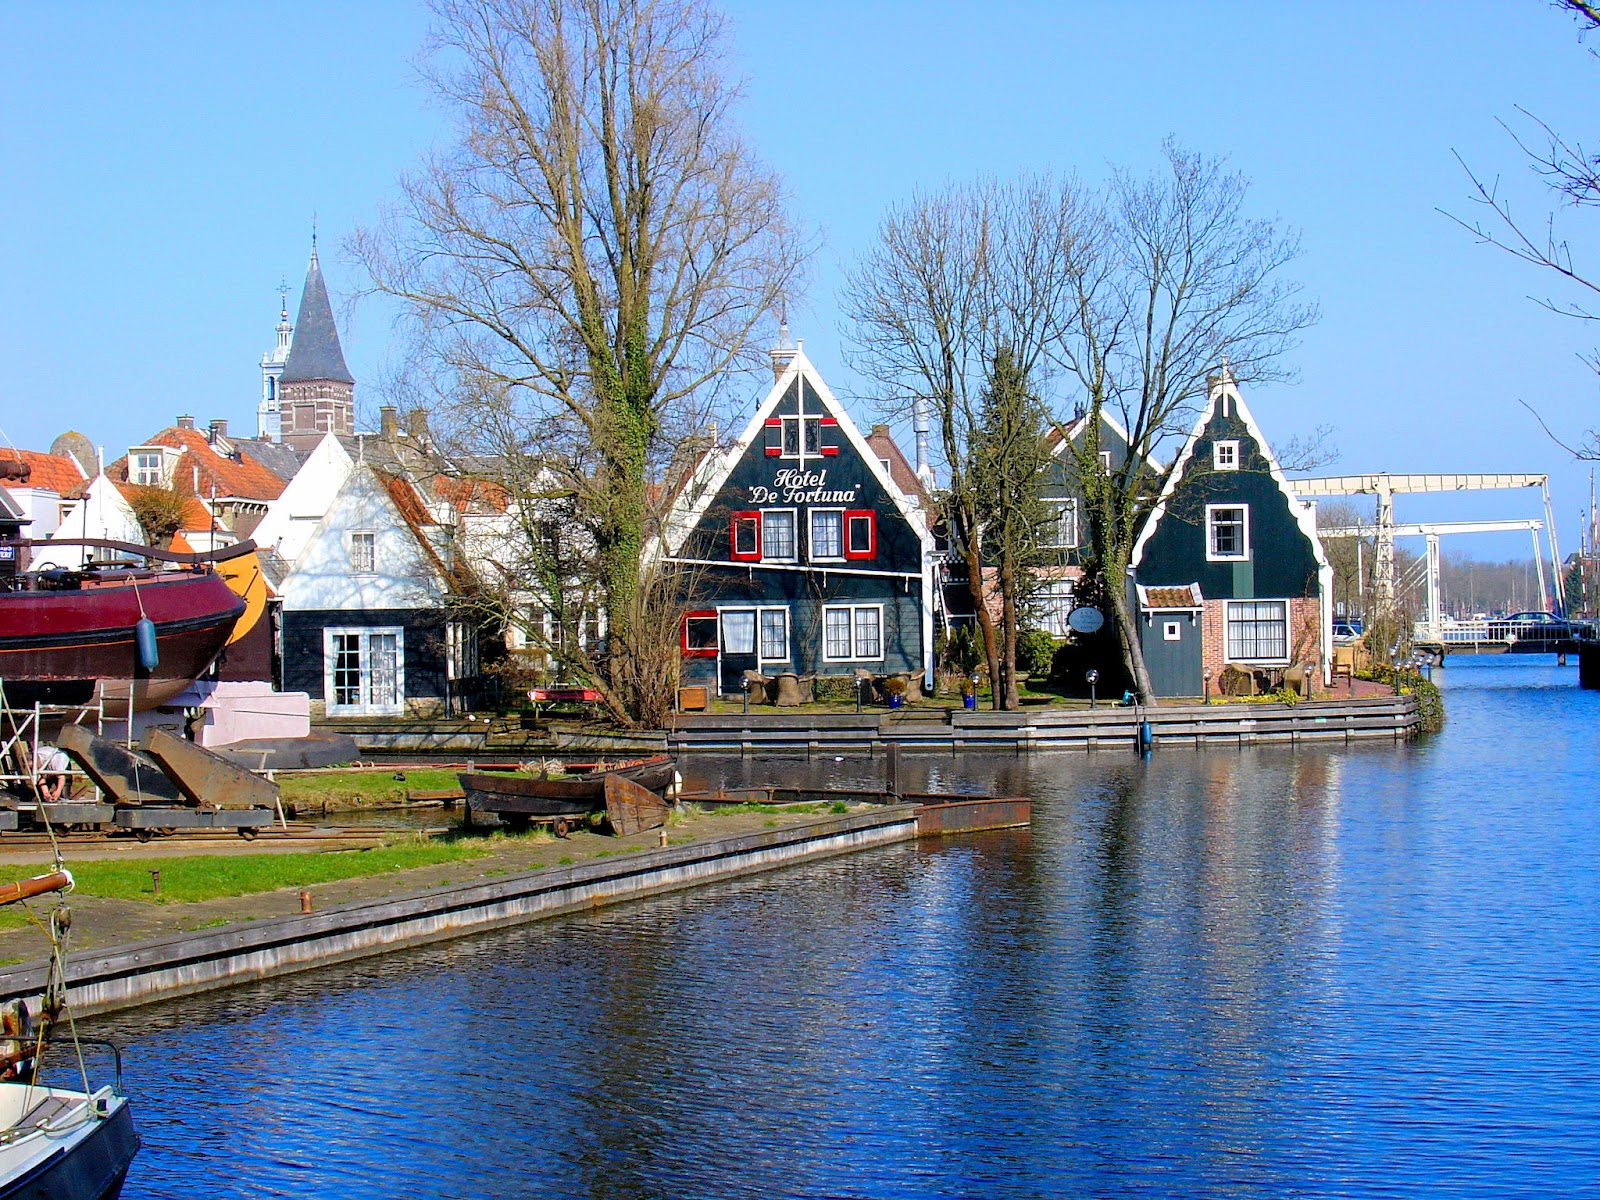 Strolling Through The Village Of Edam In The Netherlands